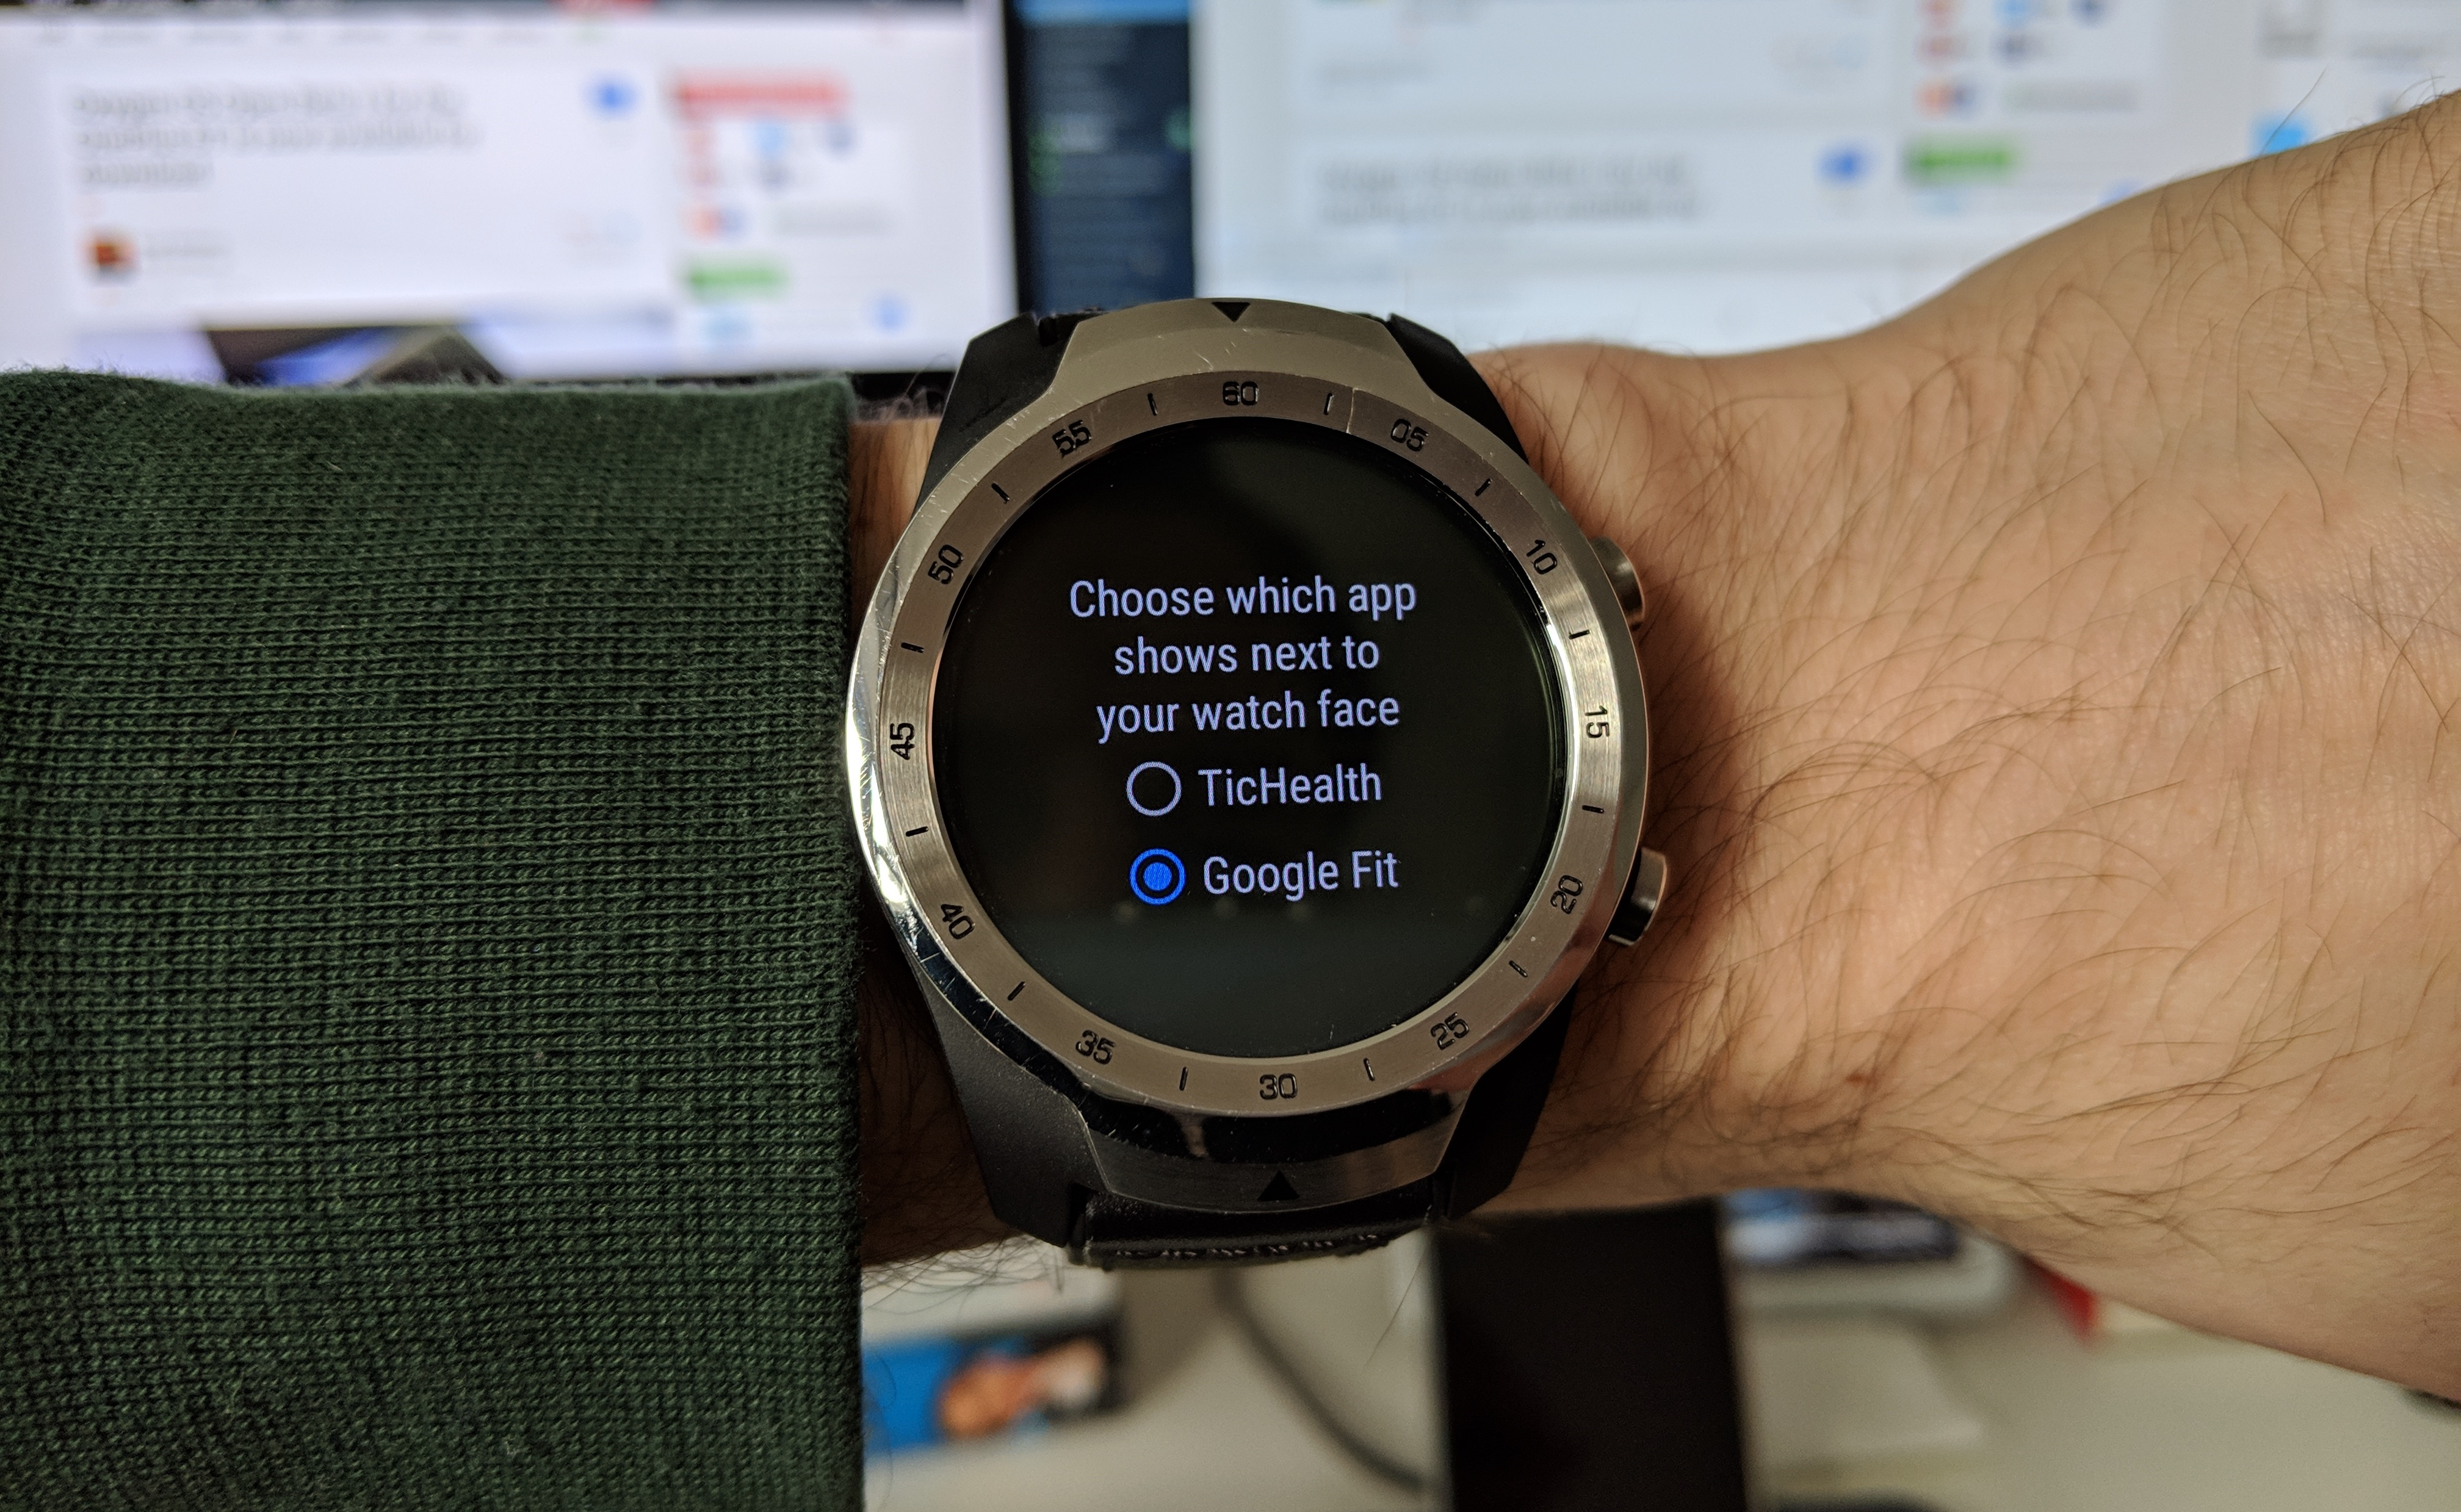 TicWatch users can now set Google Fit as their default left swipe app